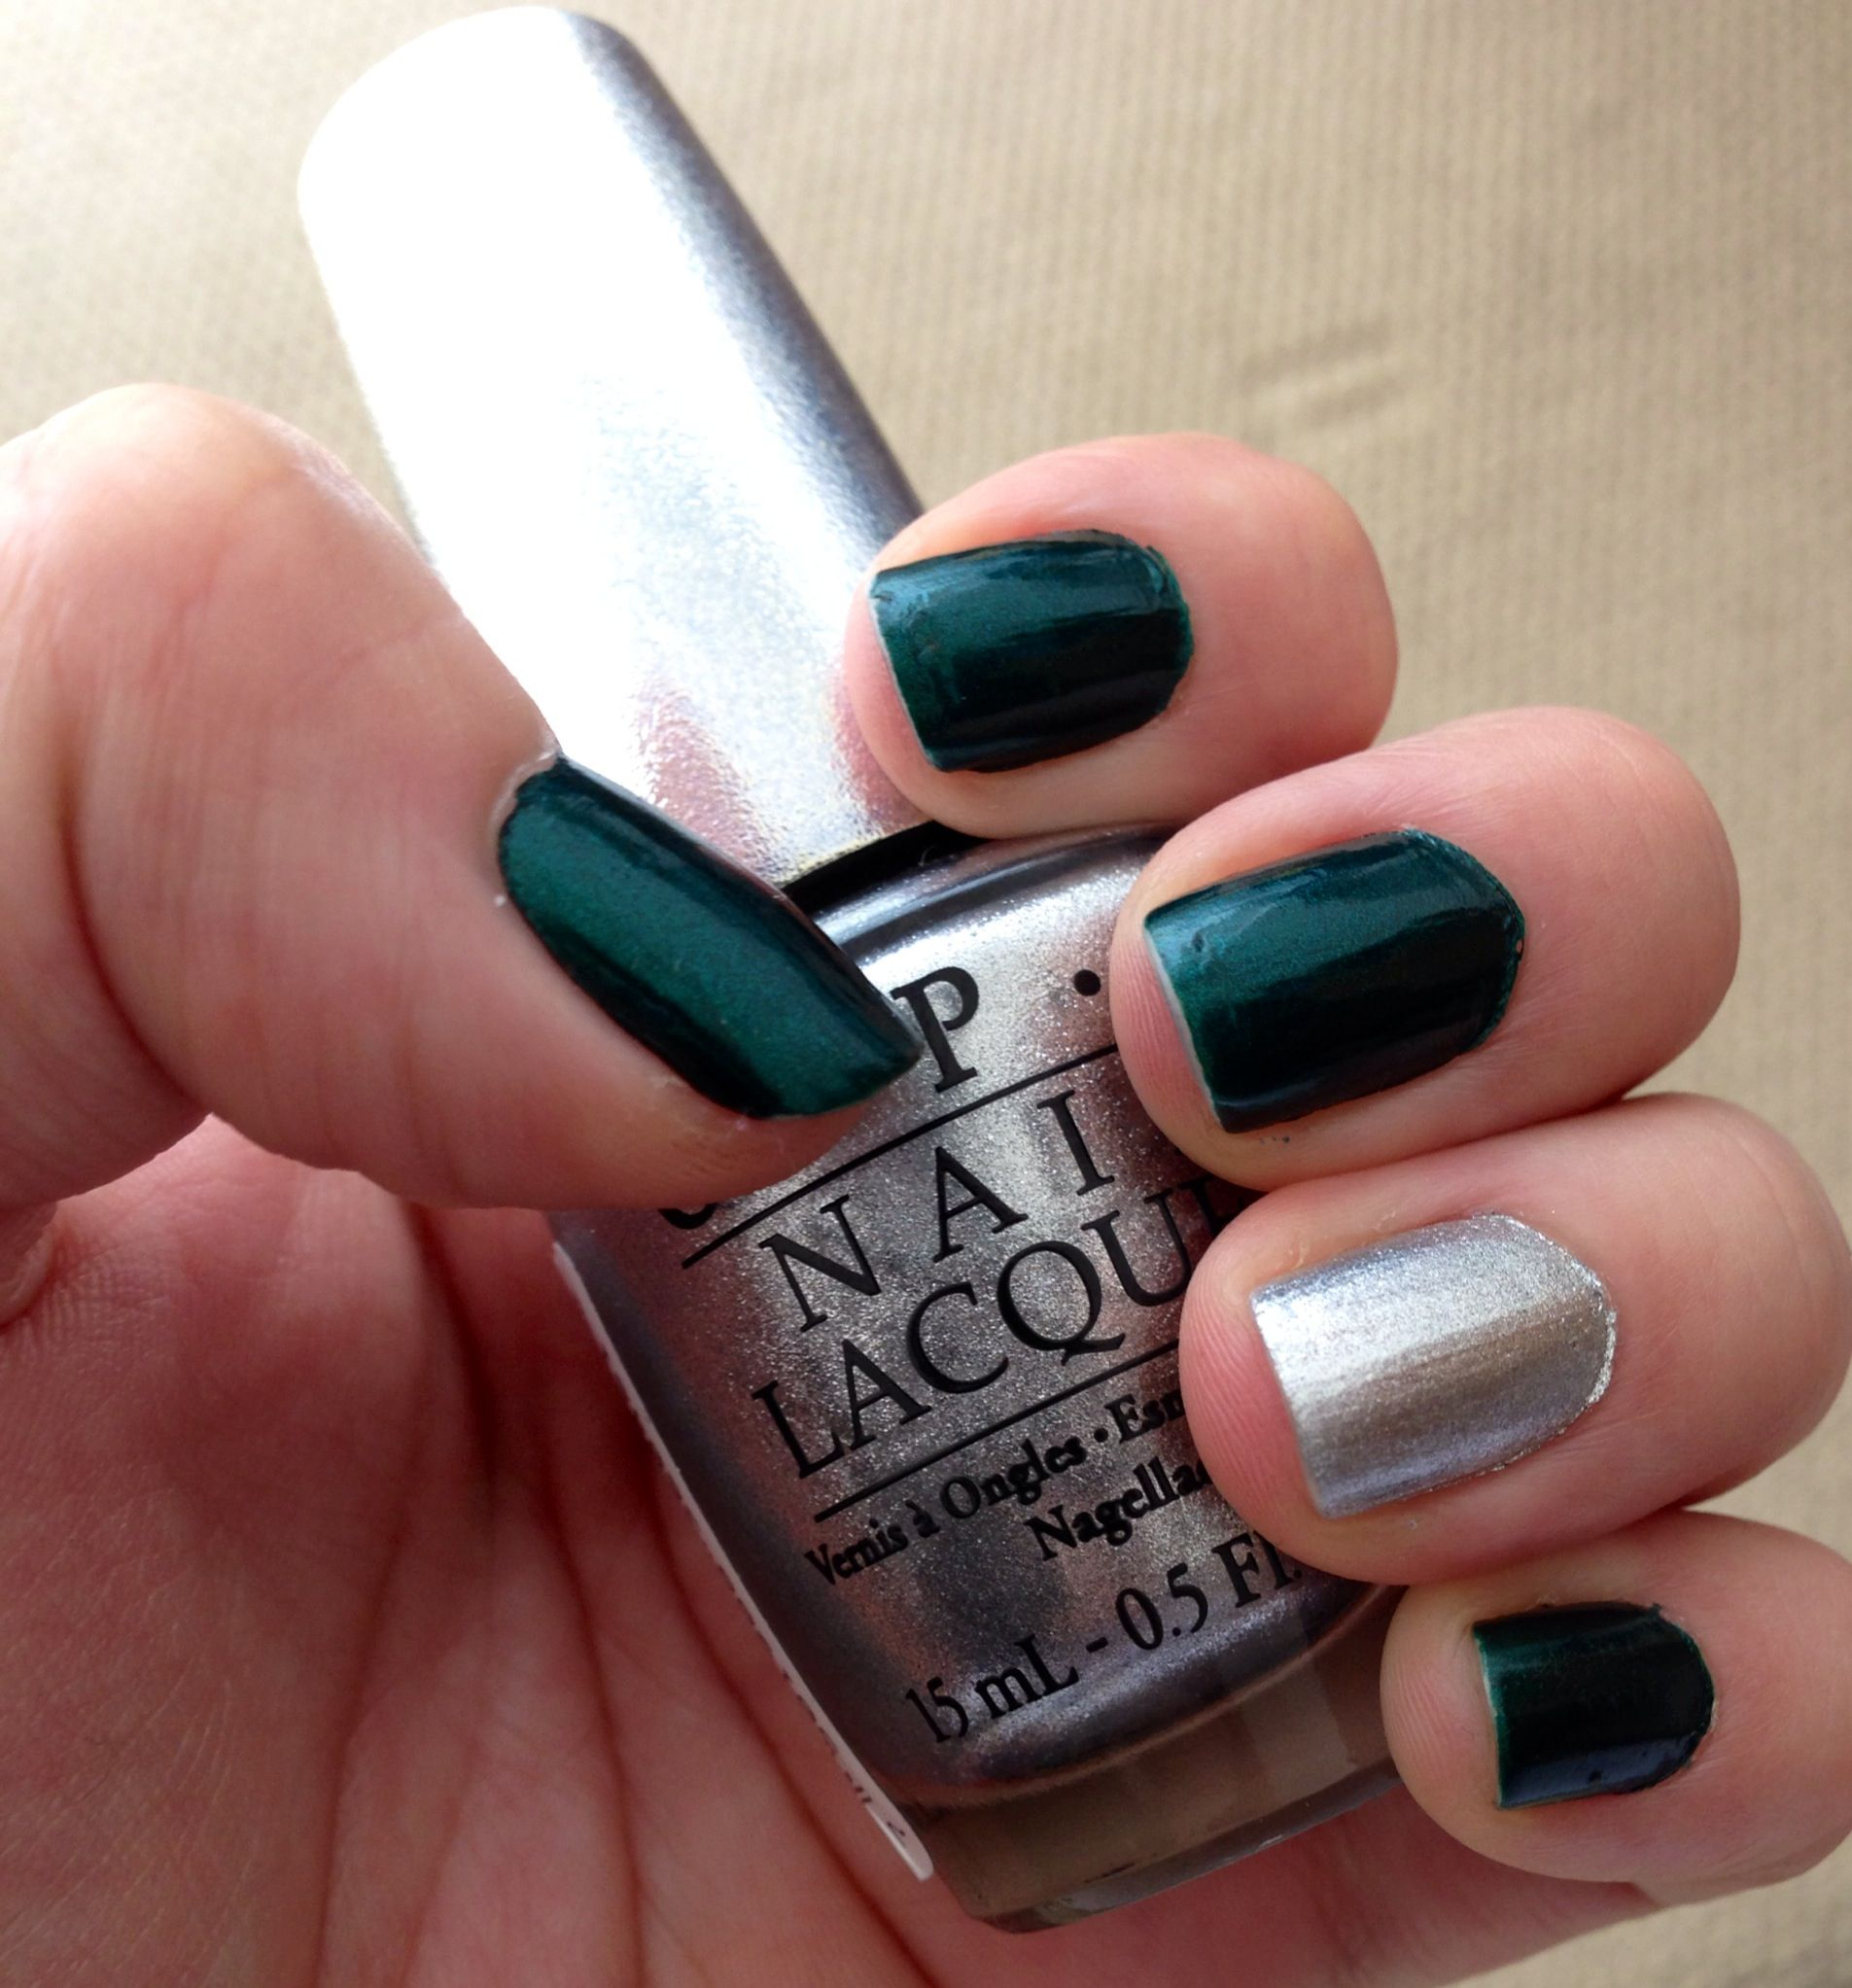 New mani opi: ds radiance @Emily Anton Products, Inc. #silver #nail ...